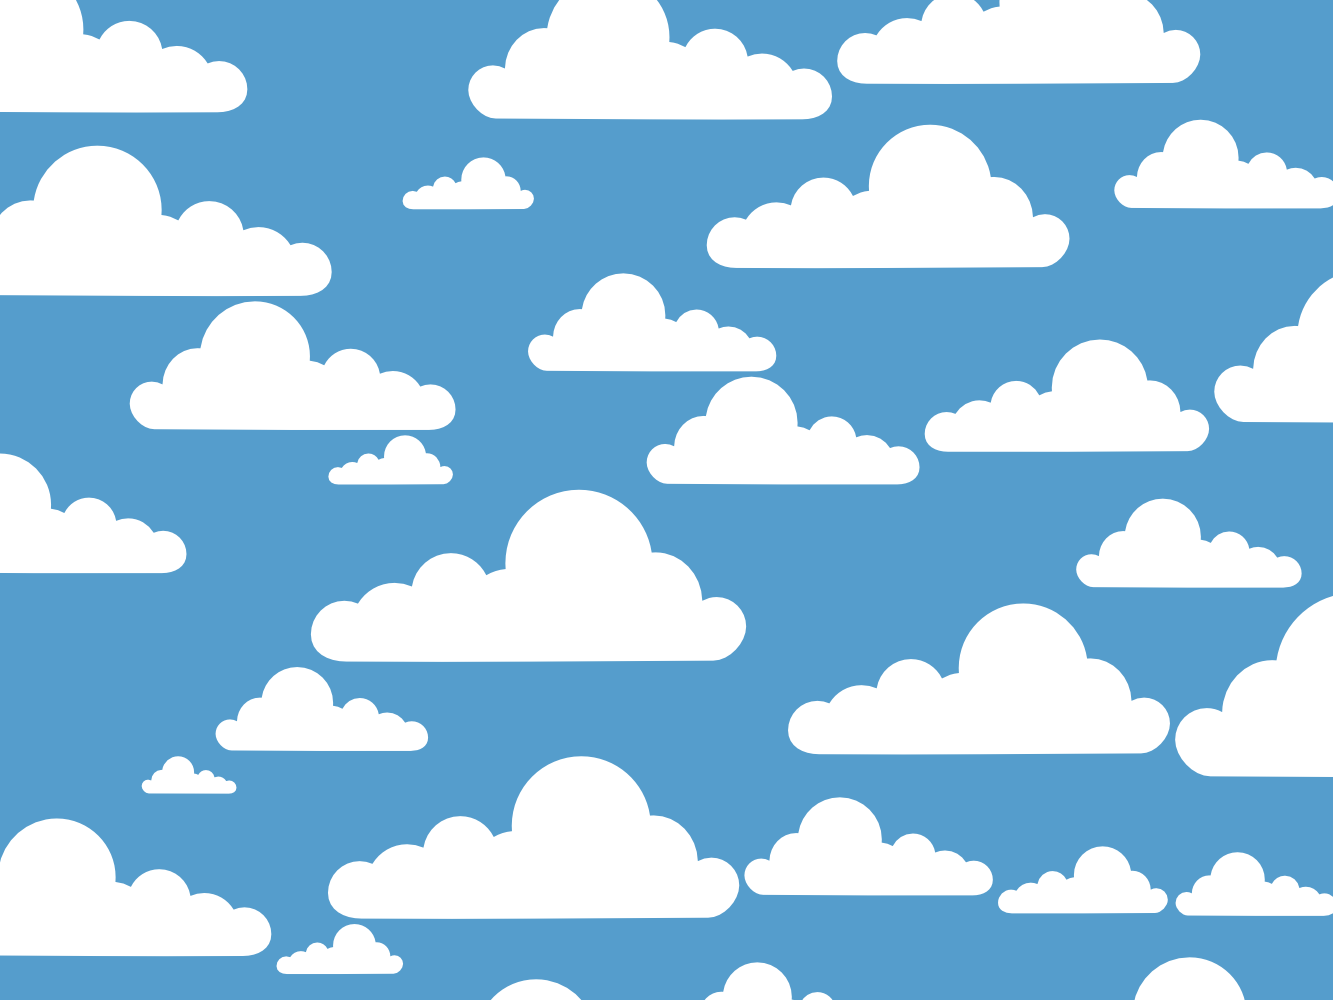 Onlinelabels clip art simple. Clipart clouds